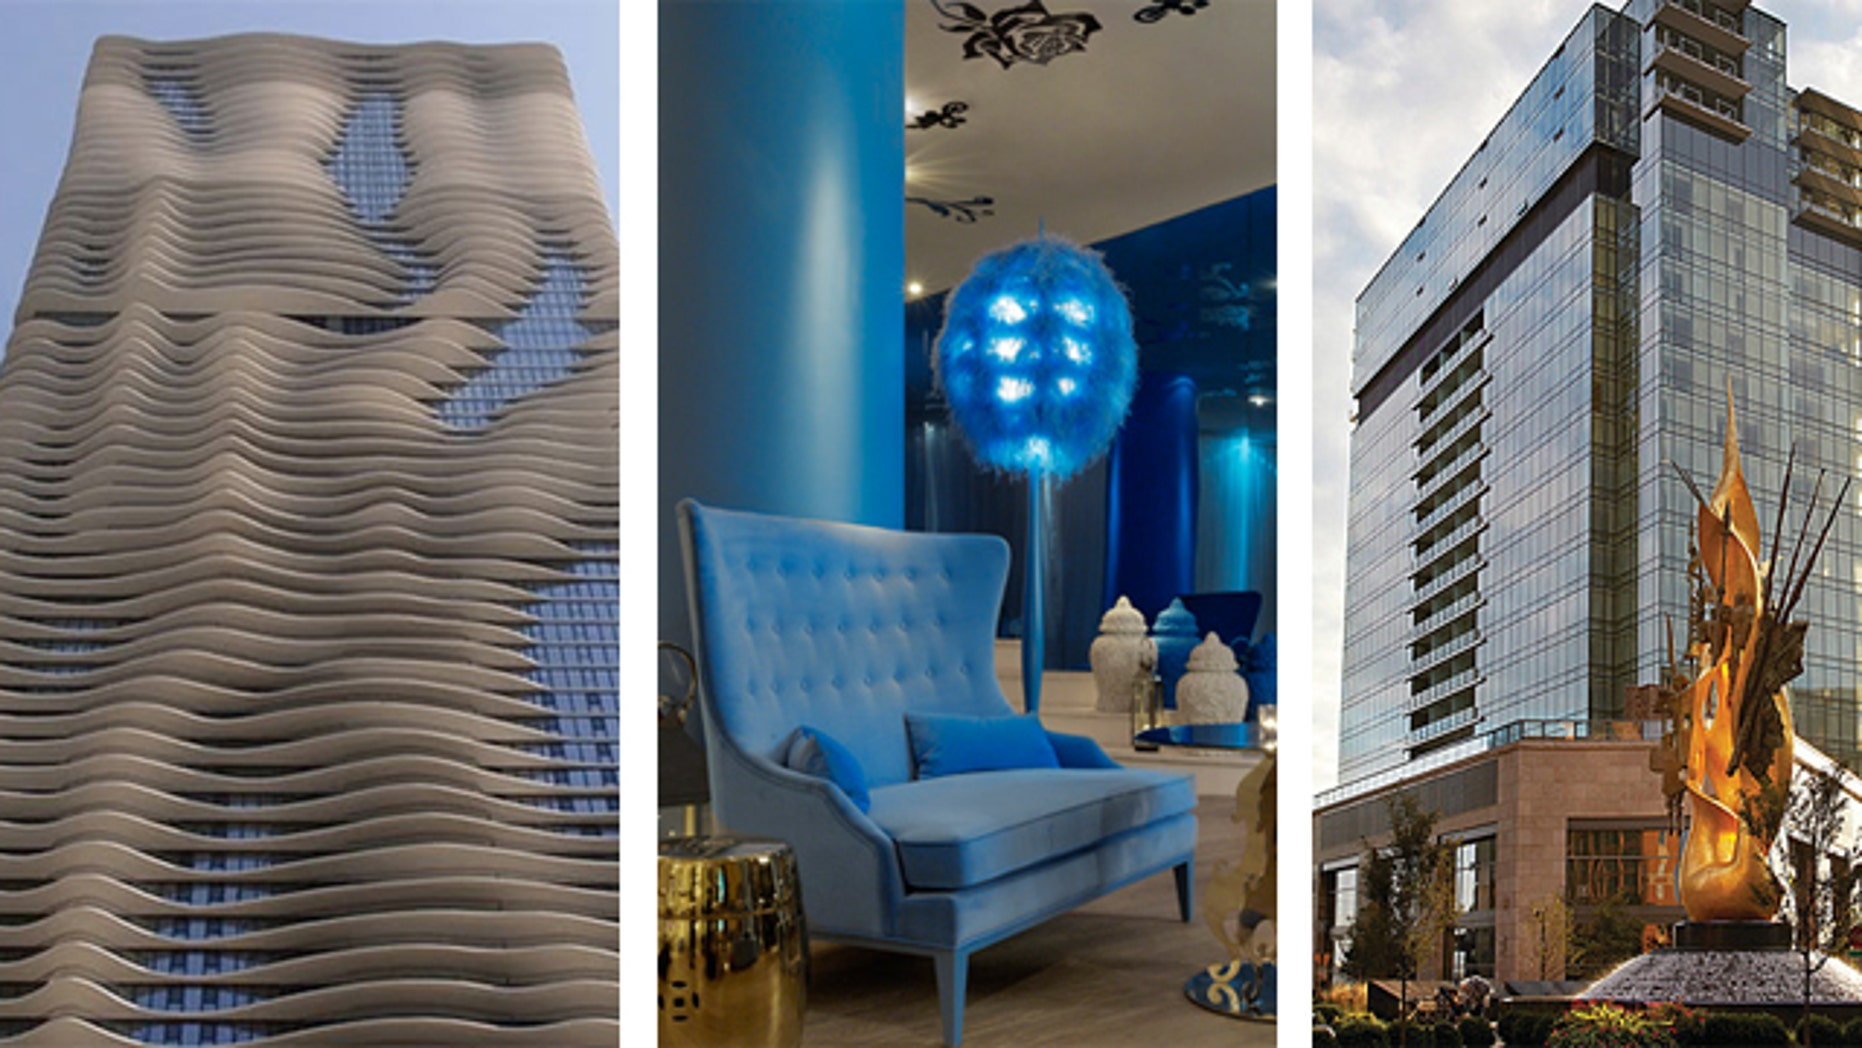 The Radisson Blu Aqua Hotel in Chicago, Mondrian SoHo in New York City and the Four Seasons Hotel in Baltimore, Maryland.